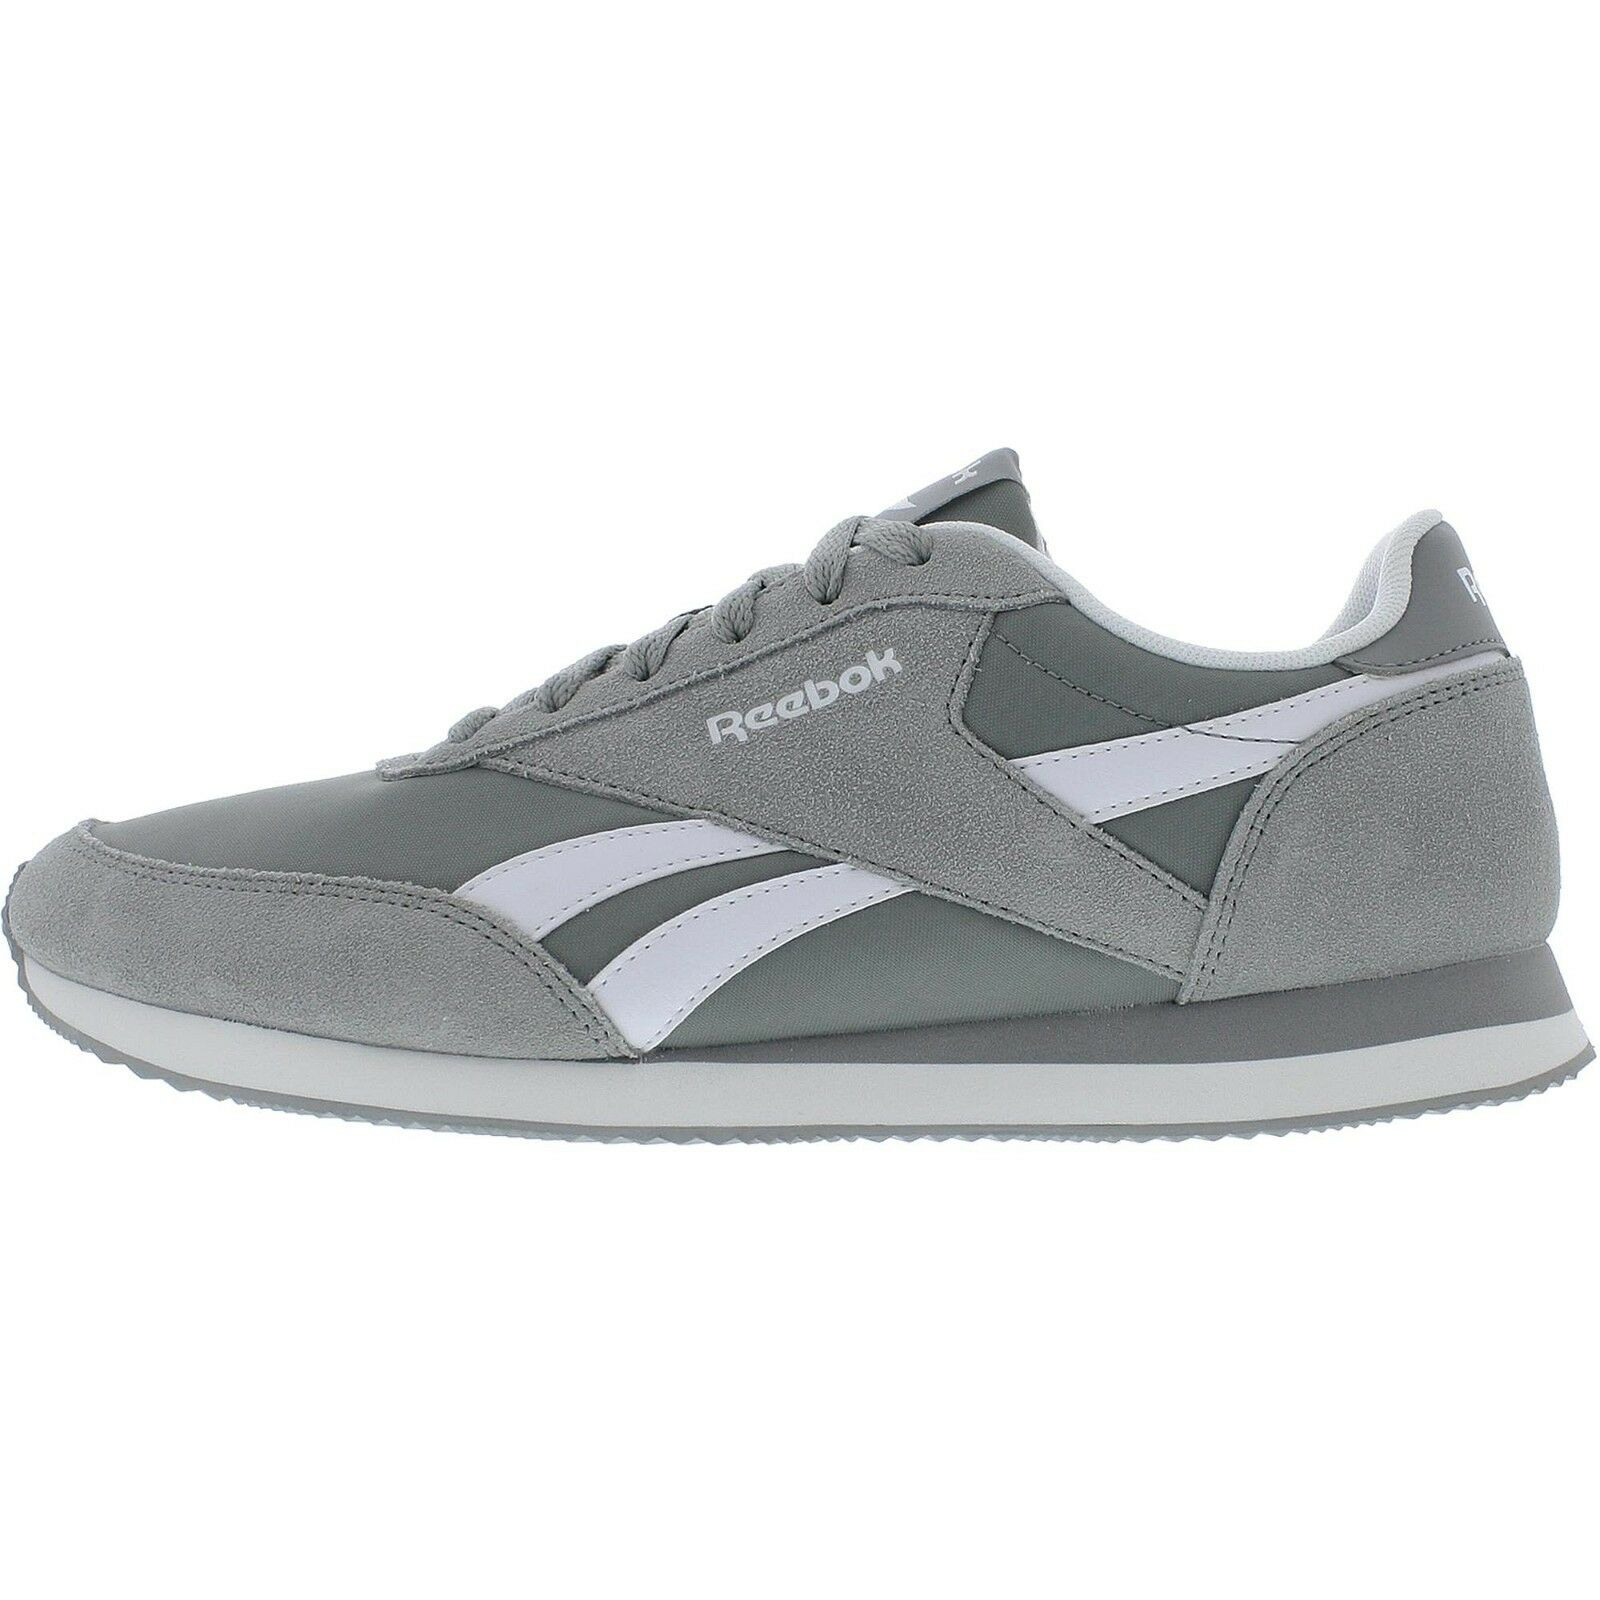 Reebok Men's Classic Royal Jogger 2 Trainers Running Tennis Shoes V70712 - Grey